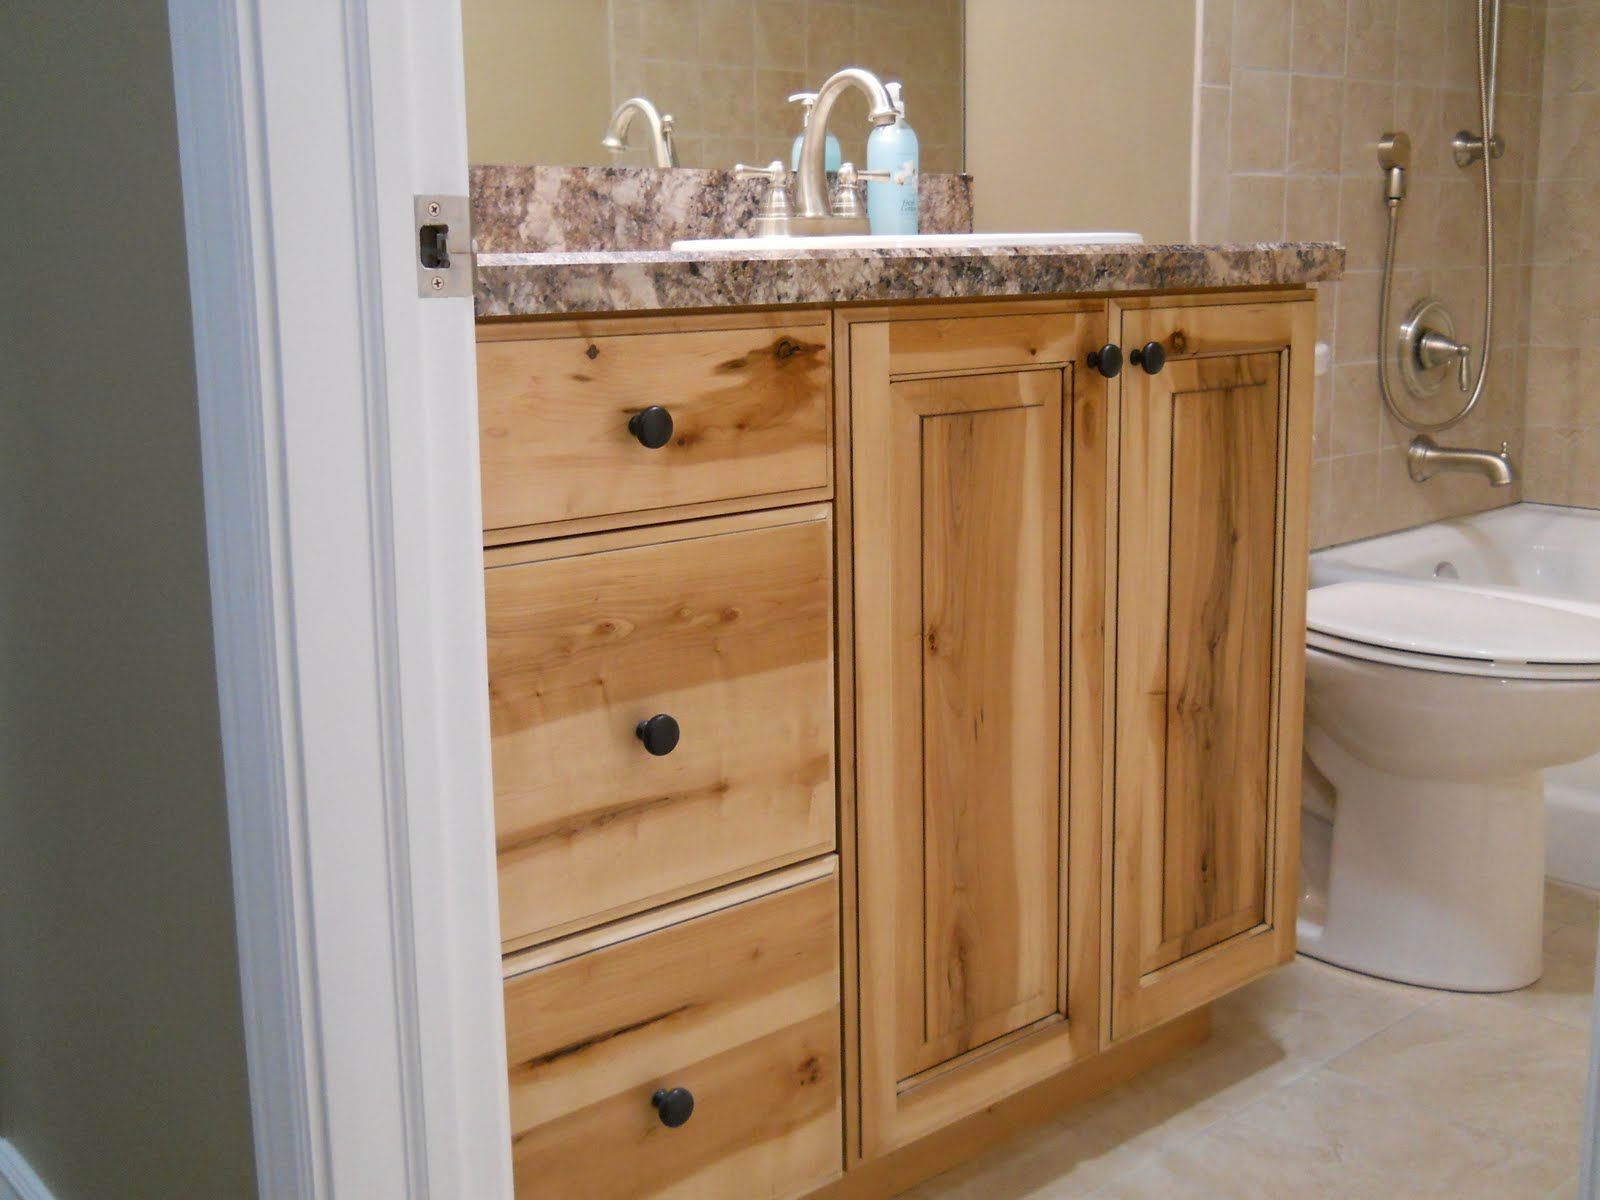 KNOTTY PINE CABINET Rustic Bathroom Vanities  Newly finished basement Cabinets in